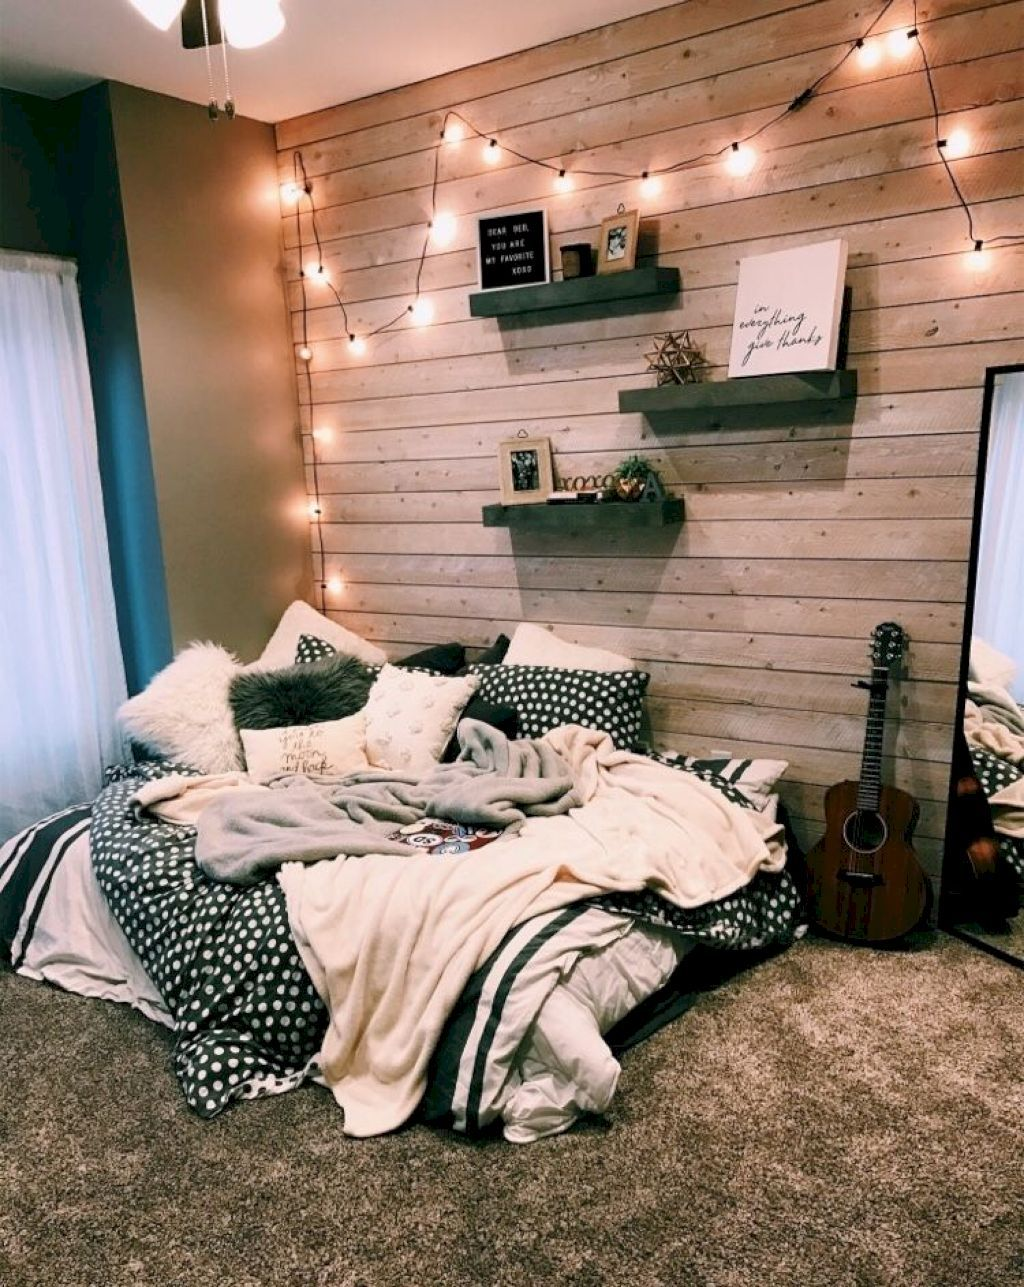 Adorable 91 Beautiful Comfy Bedroom Decorating Ideas https ... on Comfy Bedroom Ideas  id=47480